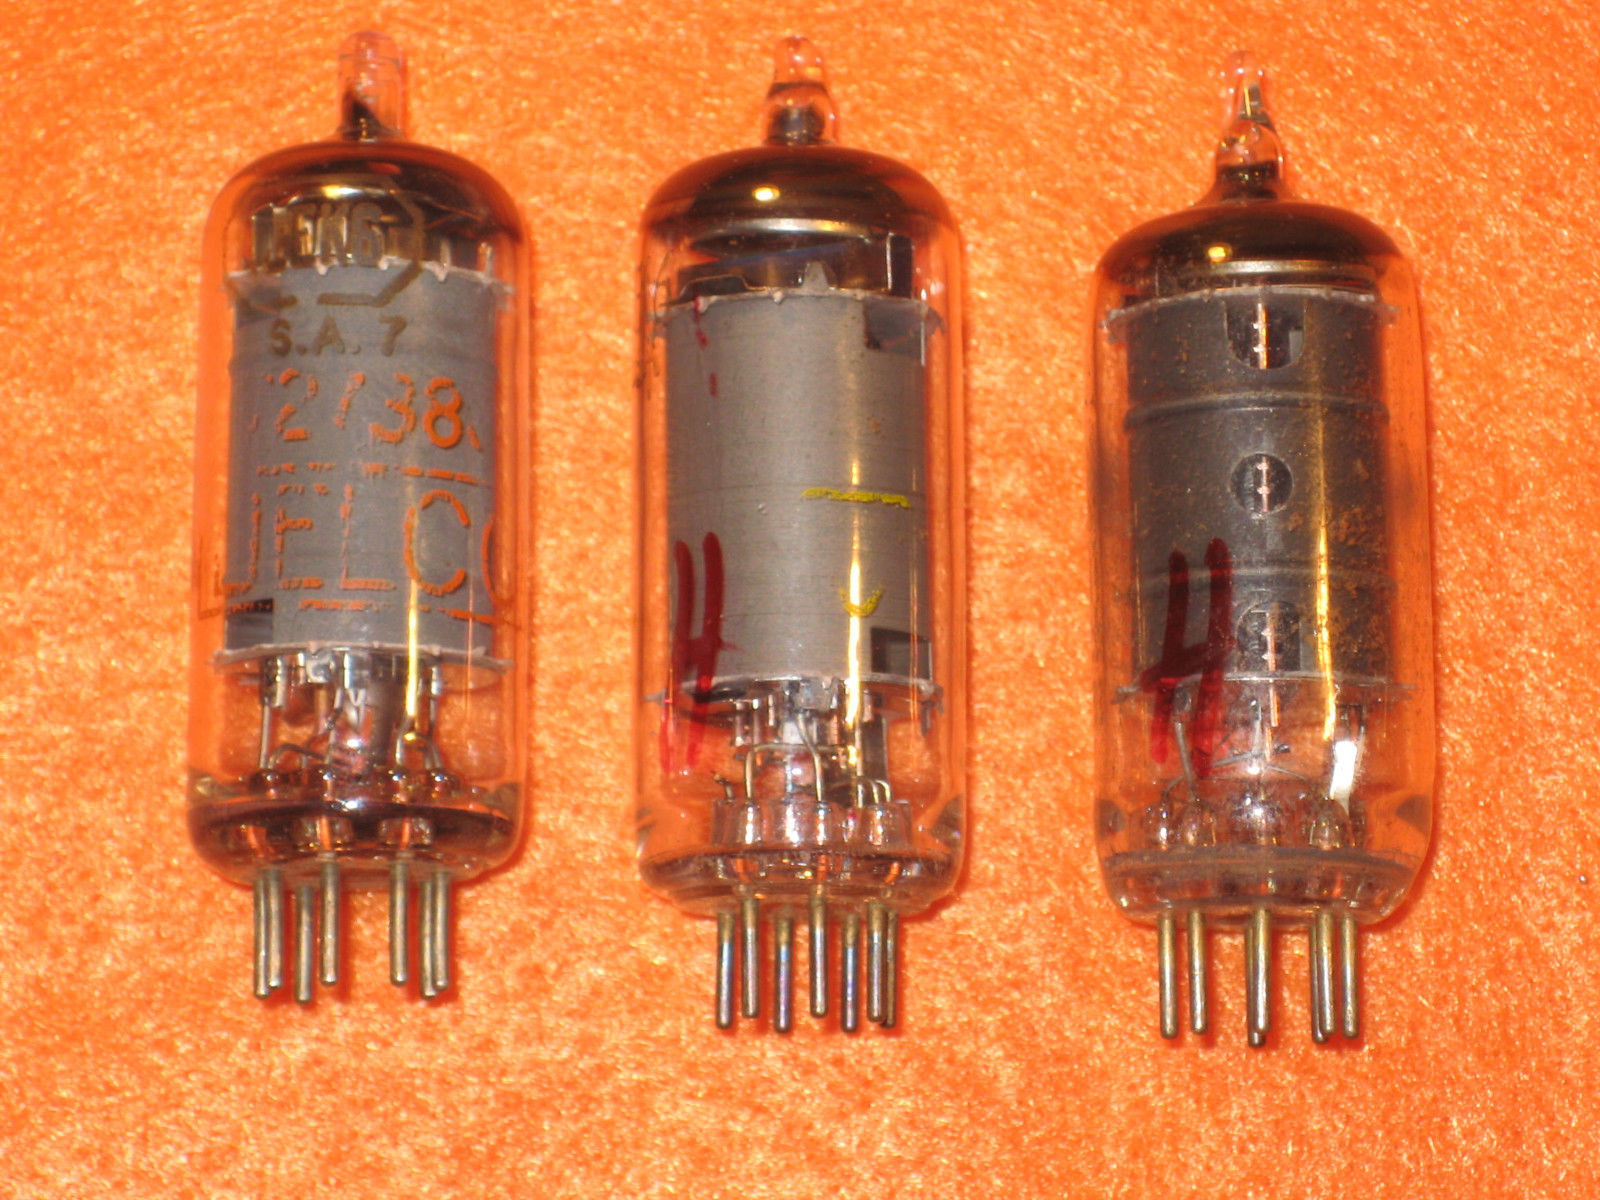 Vintage Radio Vacuum Tube (one): 12EK6 - Tested Good